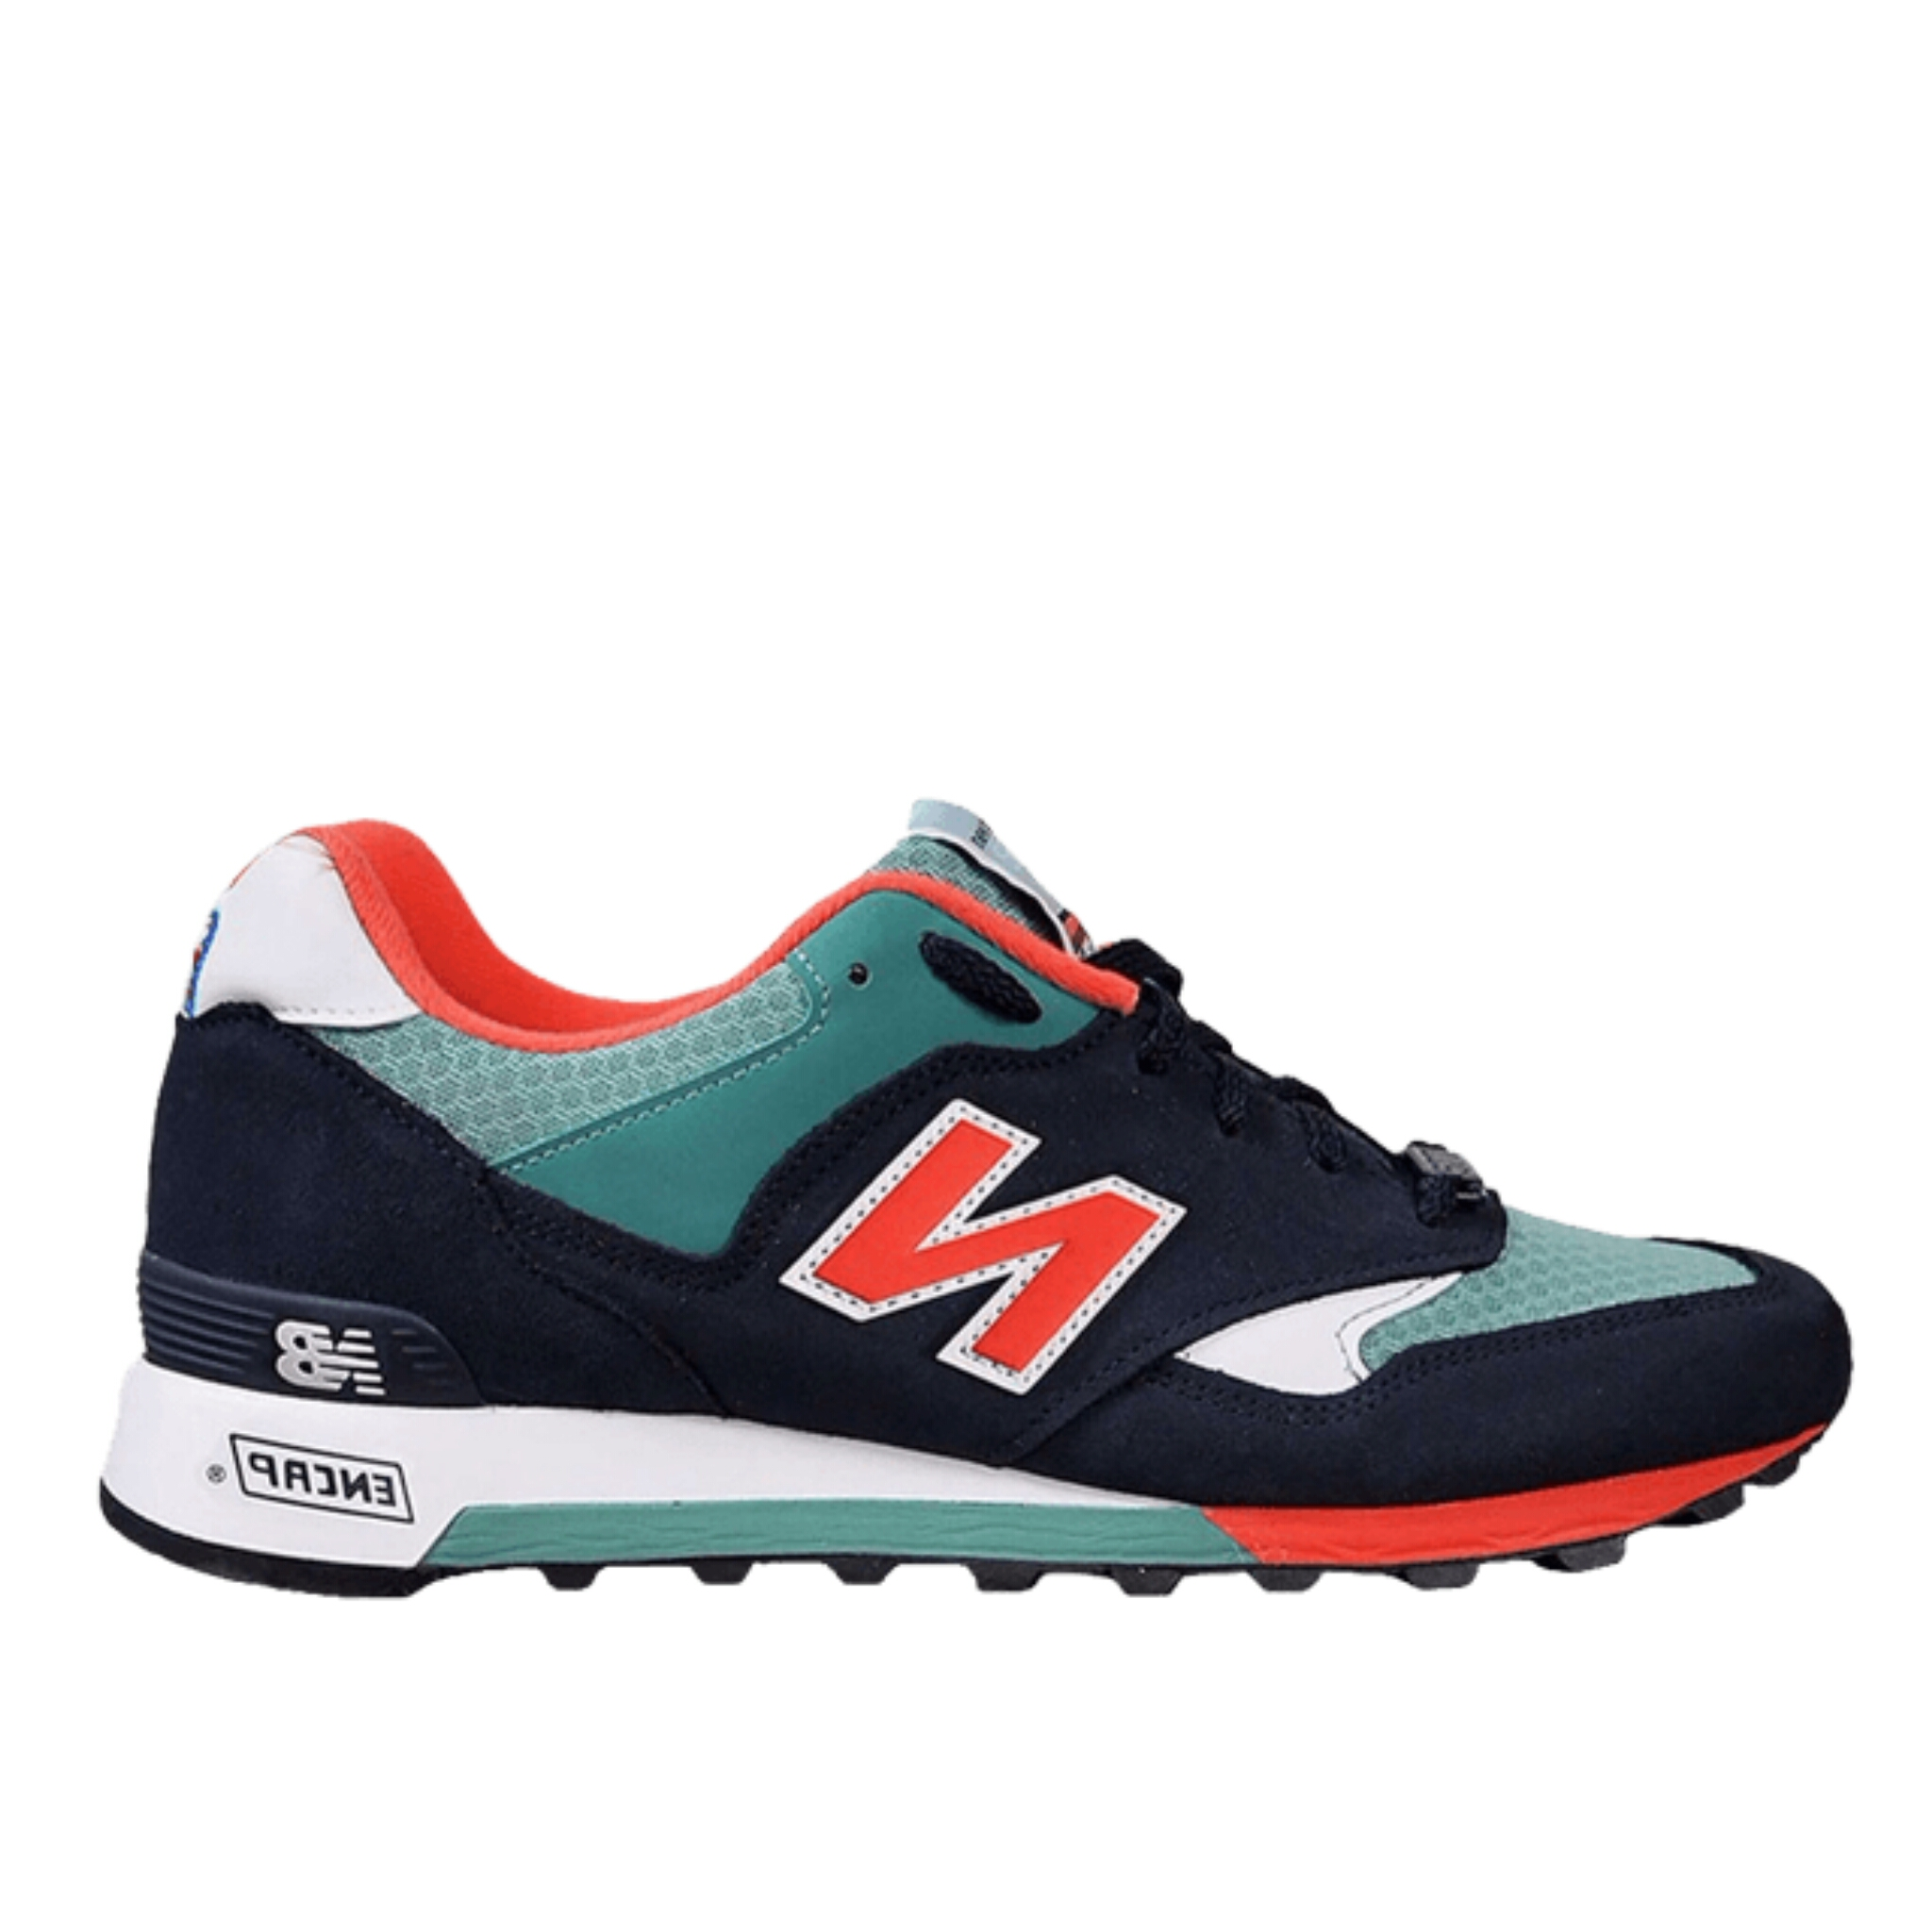 new balance shoes online pakistan